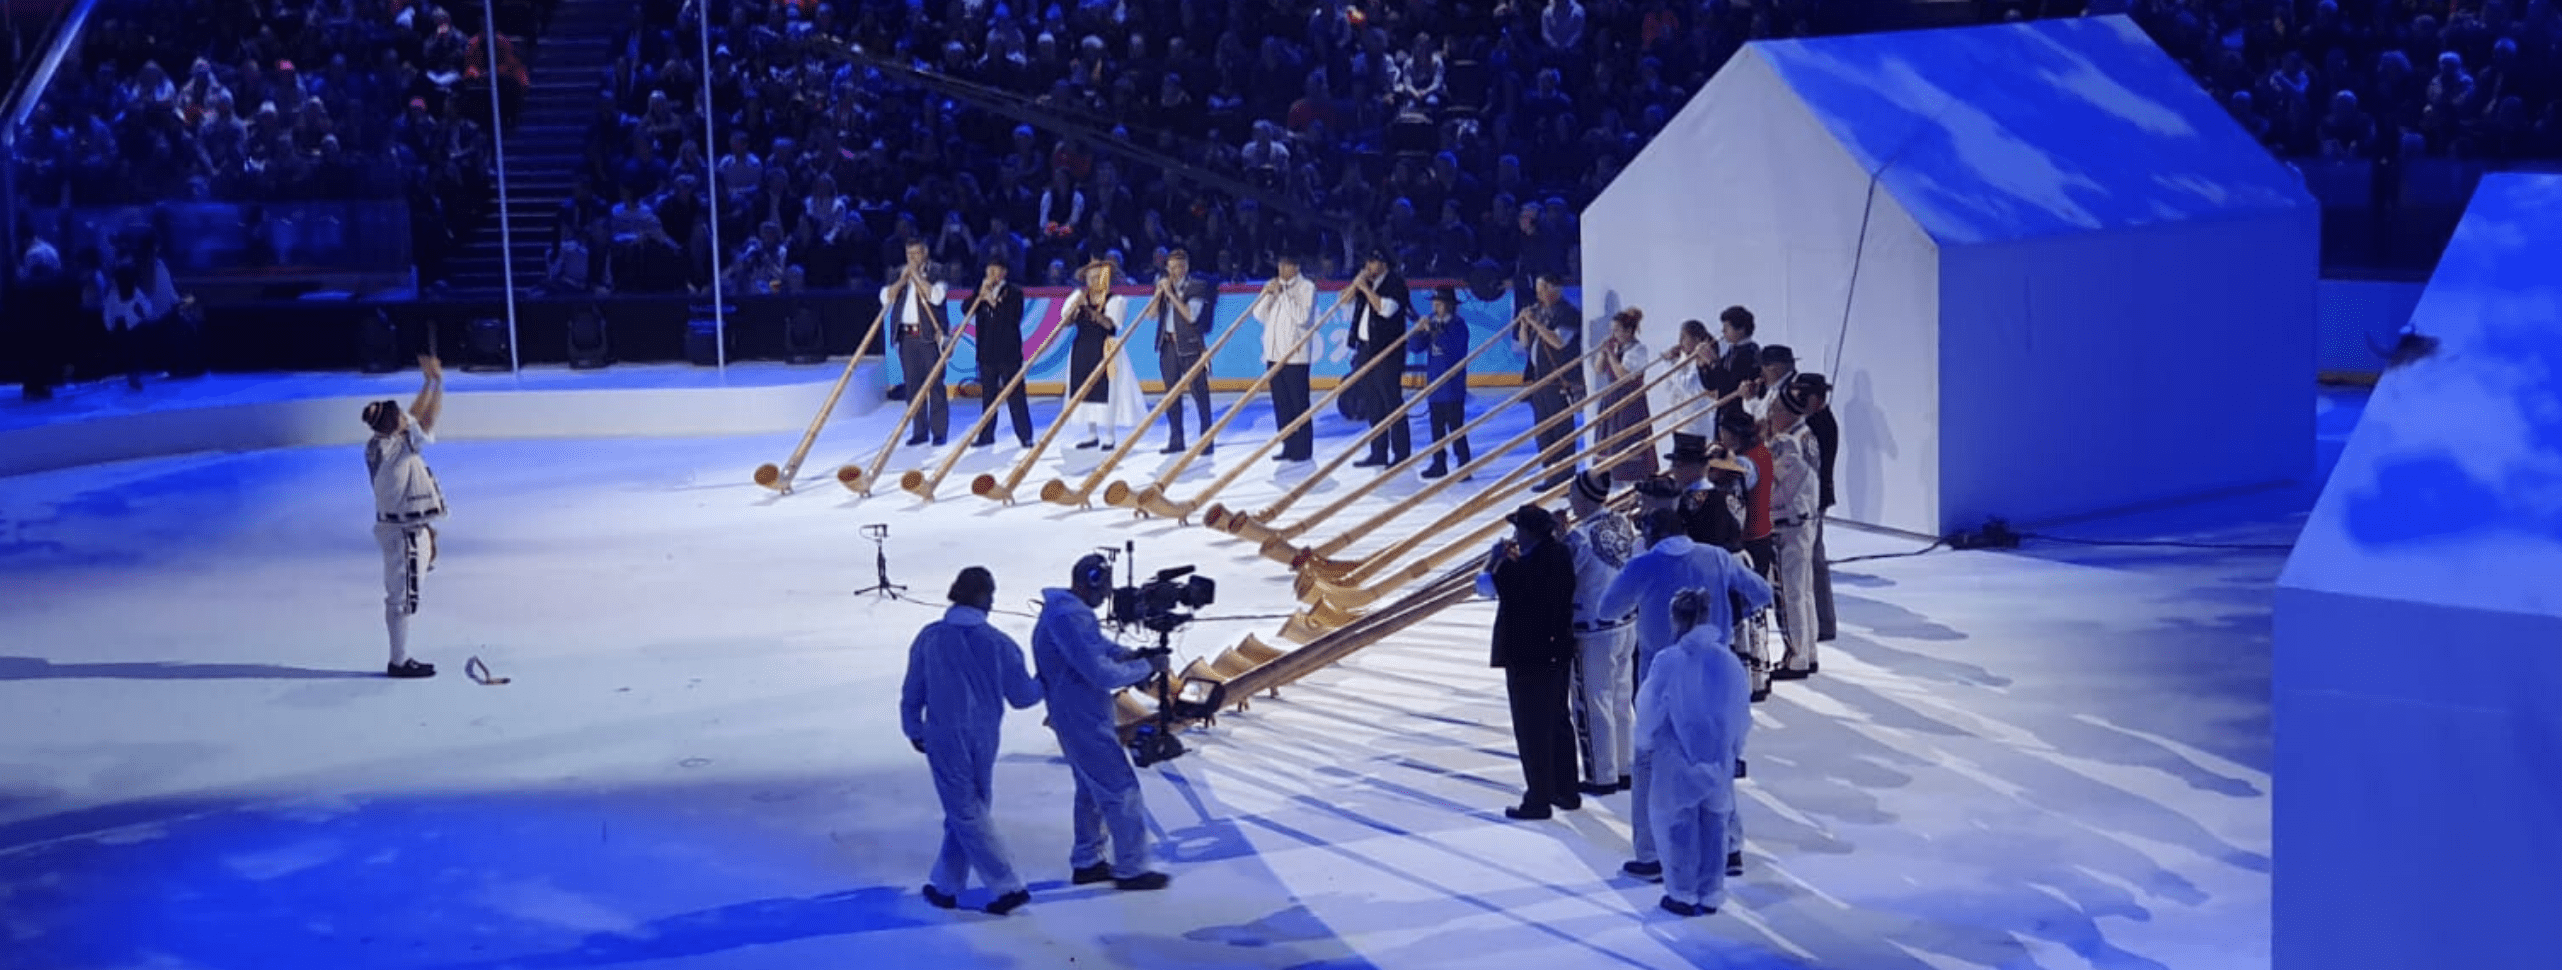 President Scolaris and IFSC Head of Olympic Coordination Attend YOG Opening Ceremony in Lausanne, Switzerland